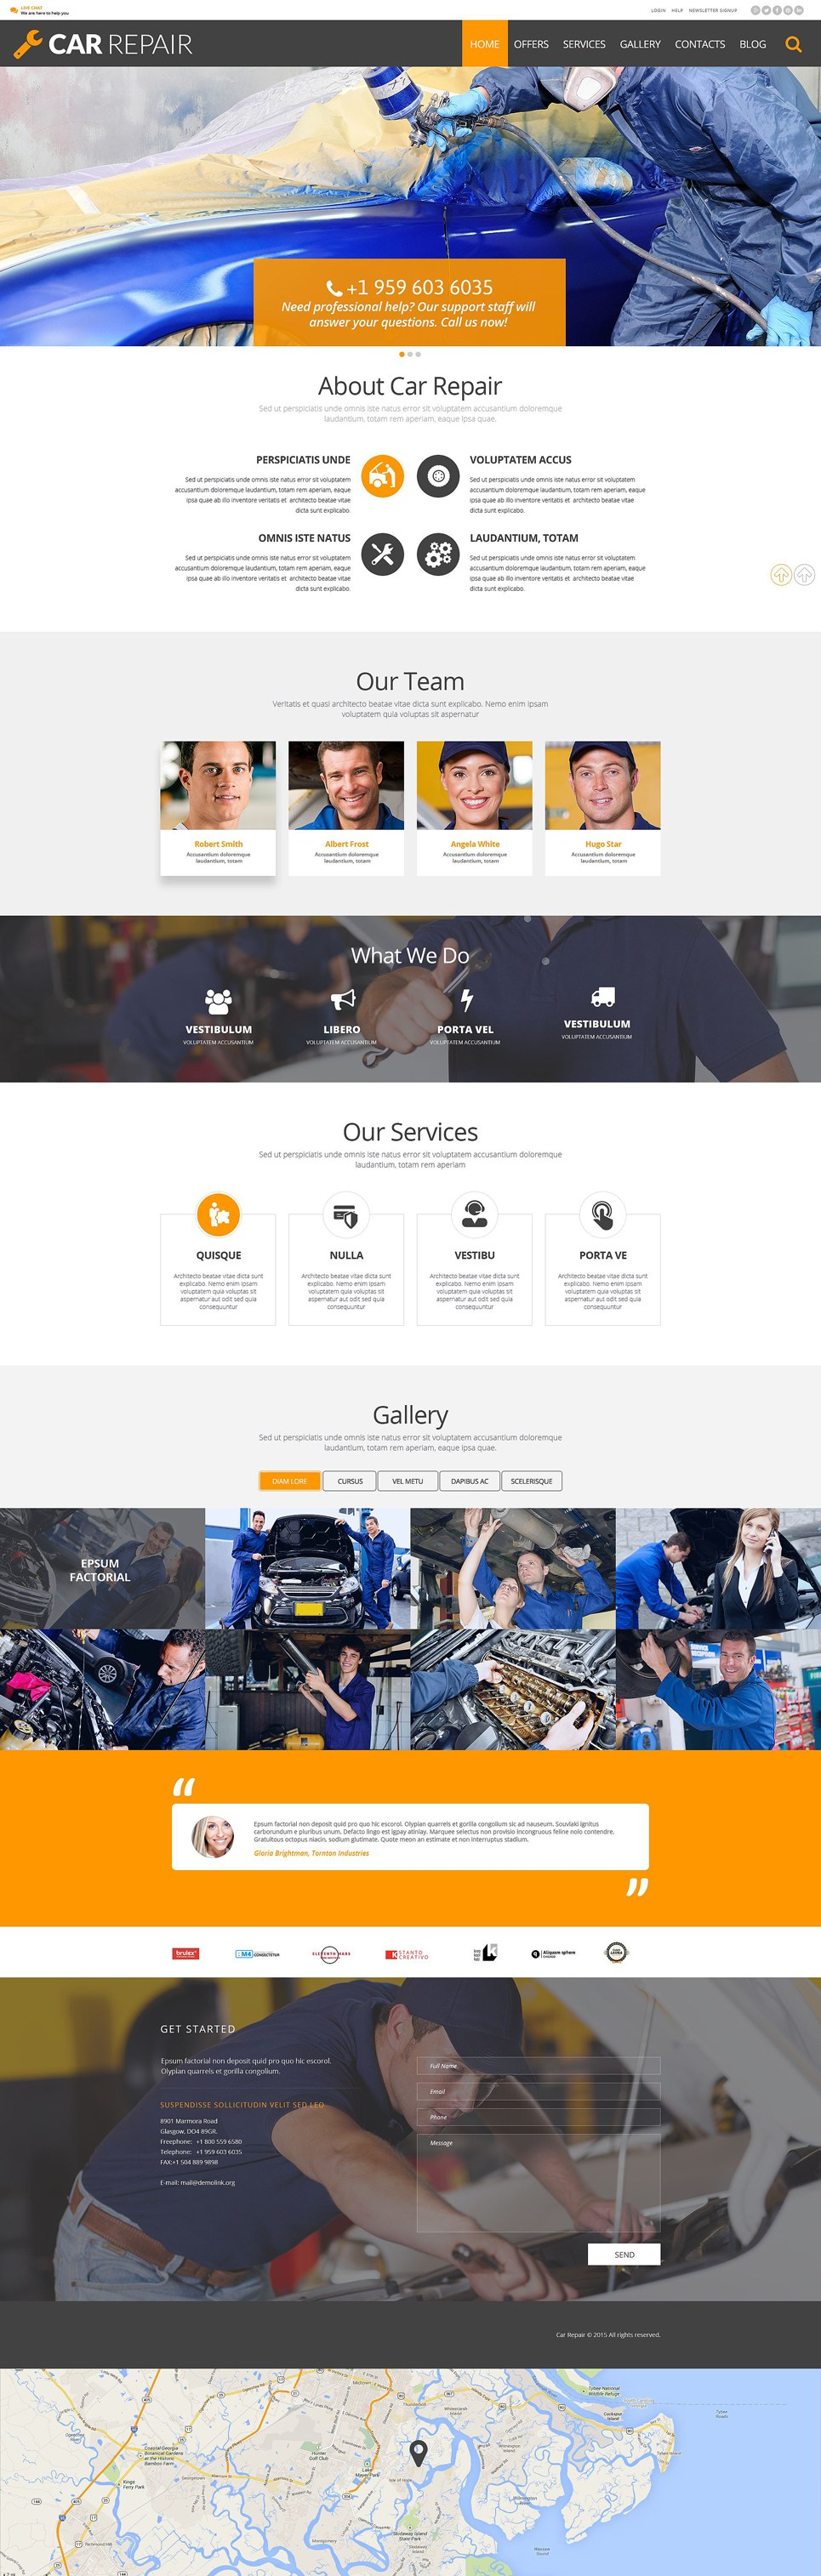 Car Mechanic And Auto Body WordPress Themes Repair Theme For Your Site Item Picture